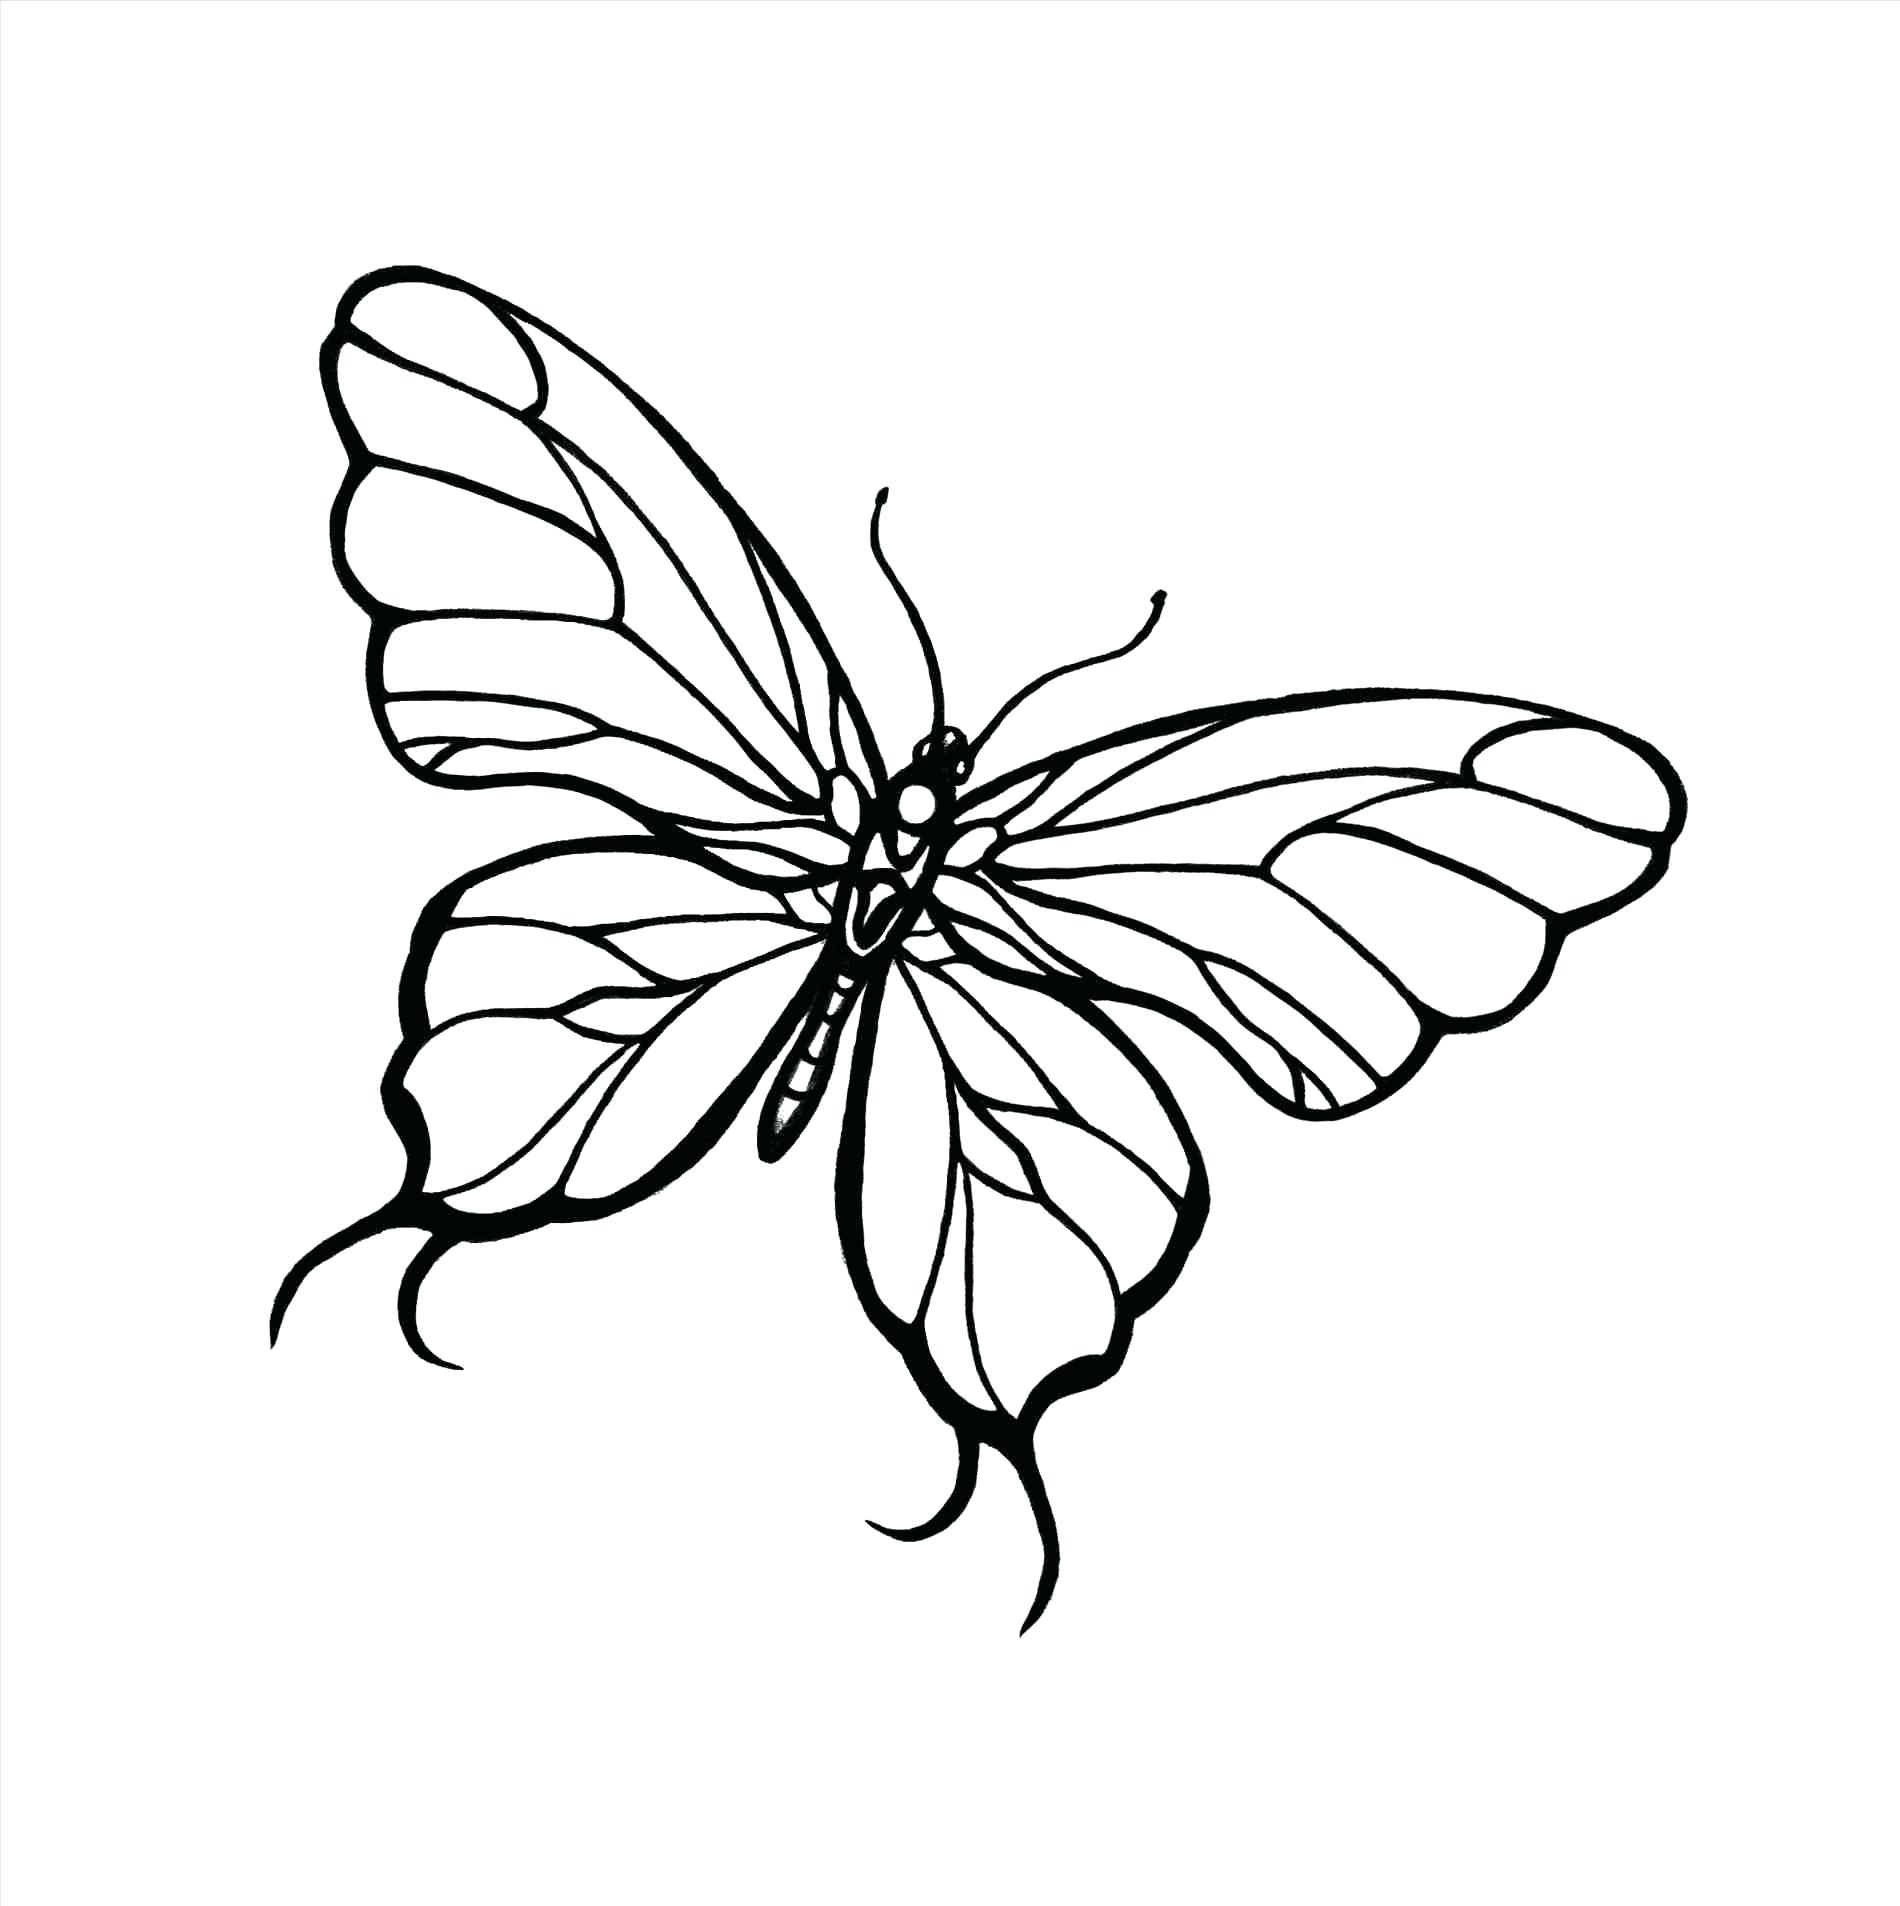 1900x1906 Decoration Cool Designs Drawings Butterfly To Draw Henna Simple